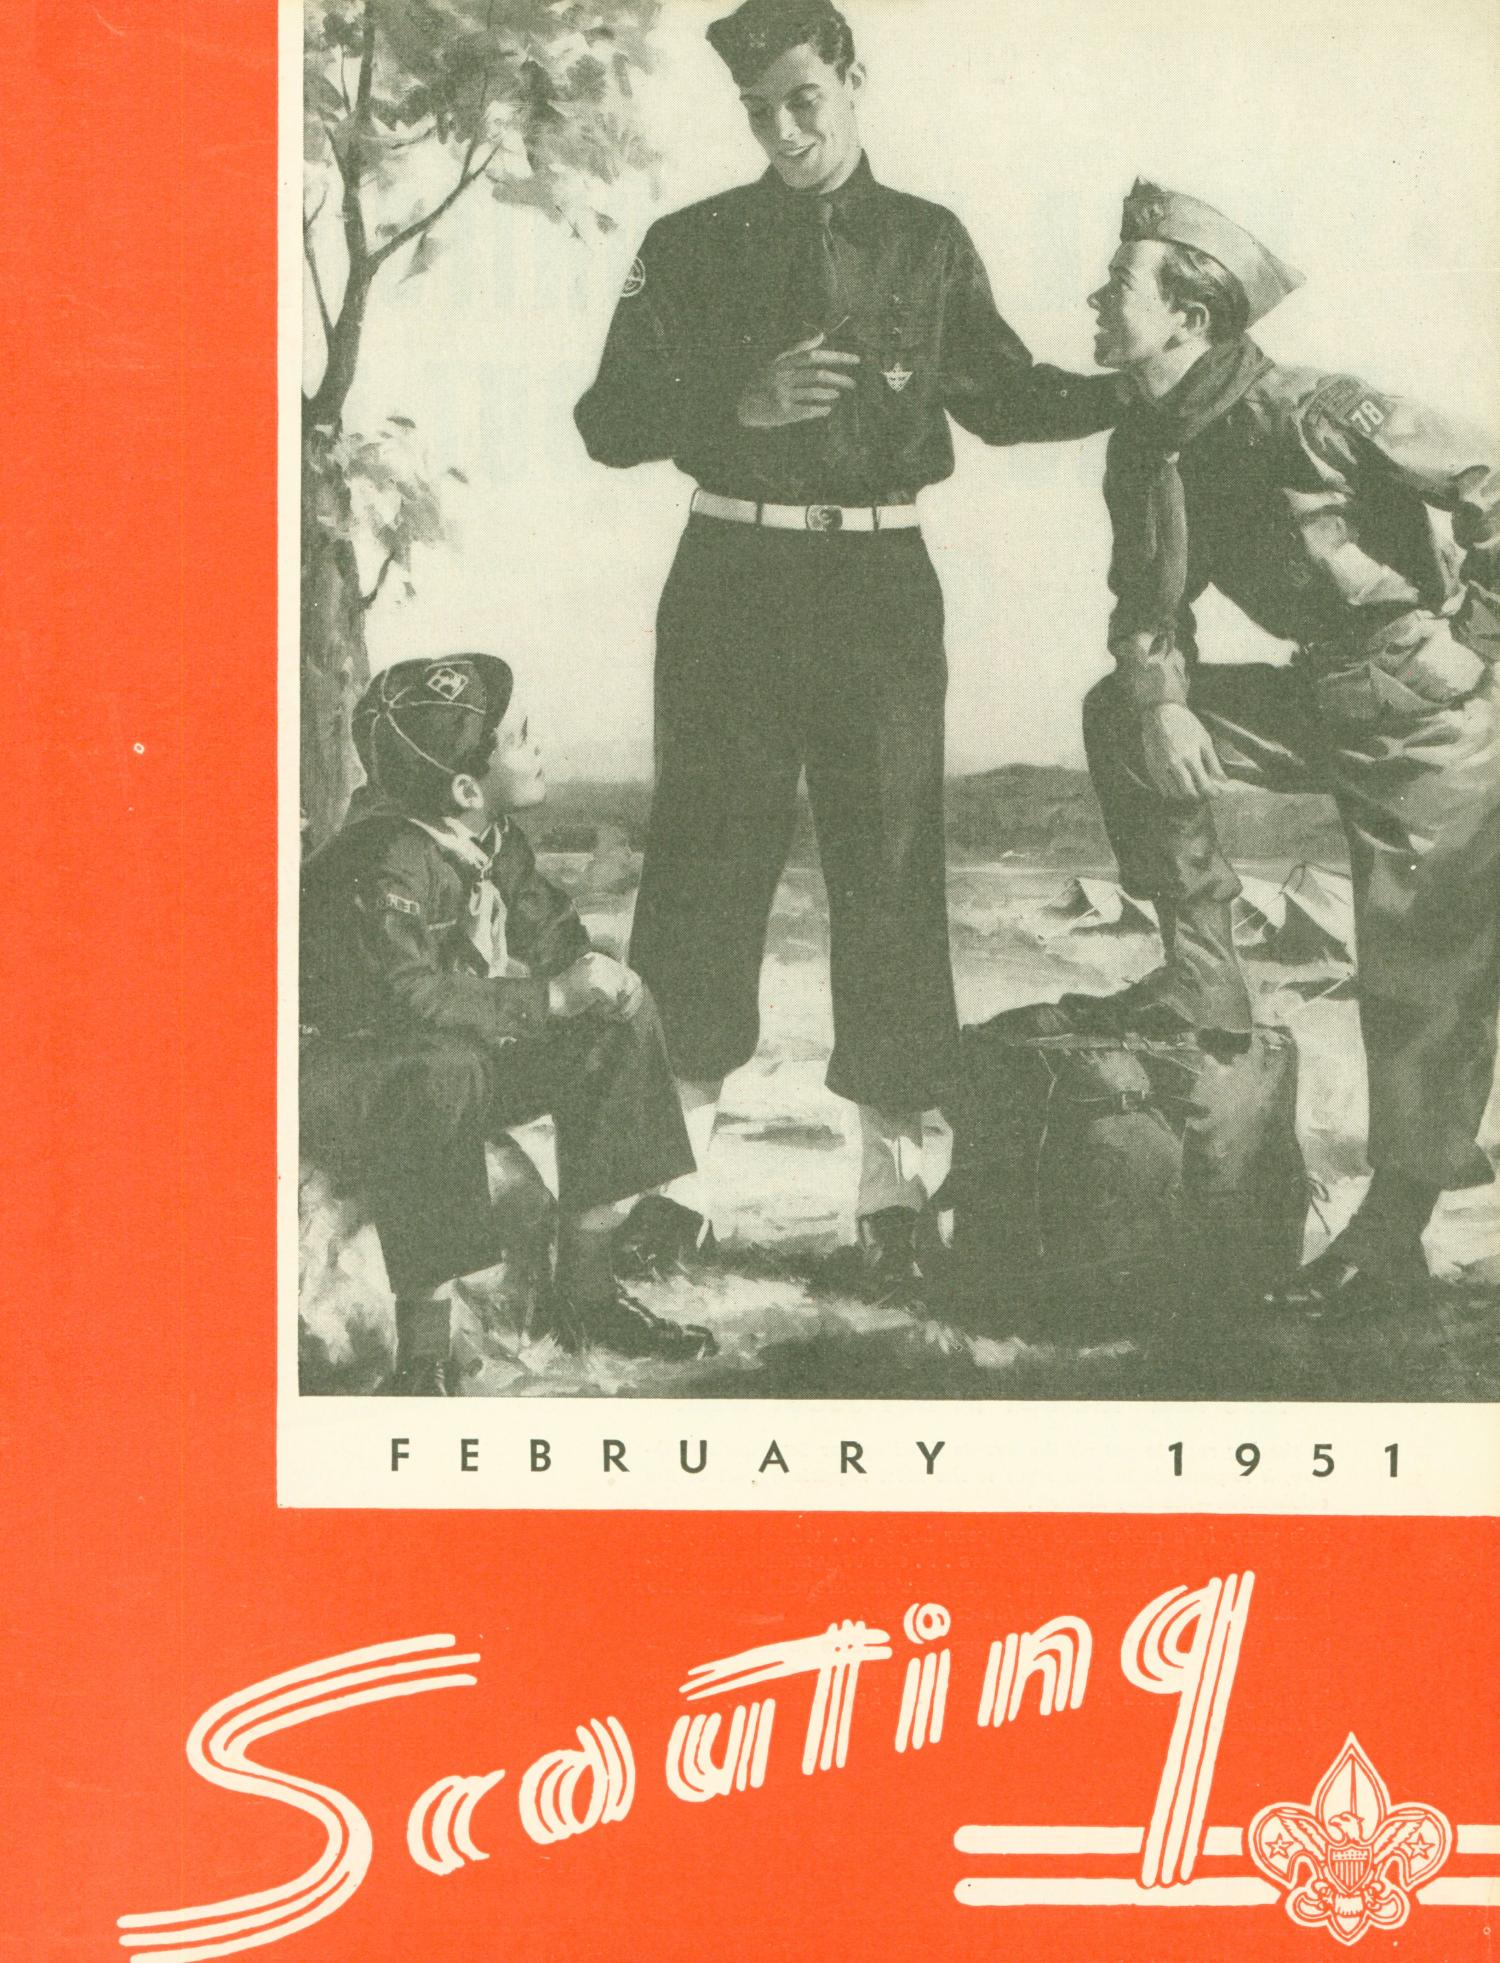 Scouting, Volume 39, Number 2, February 1951                                                                                                      Front Cover